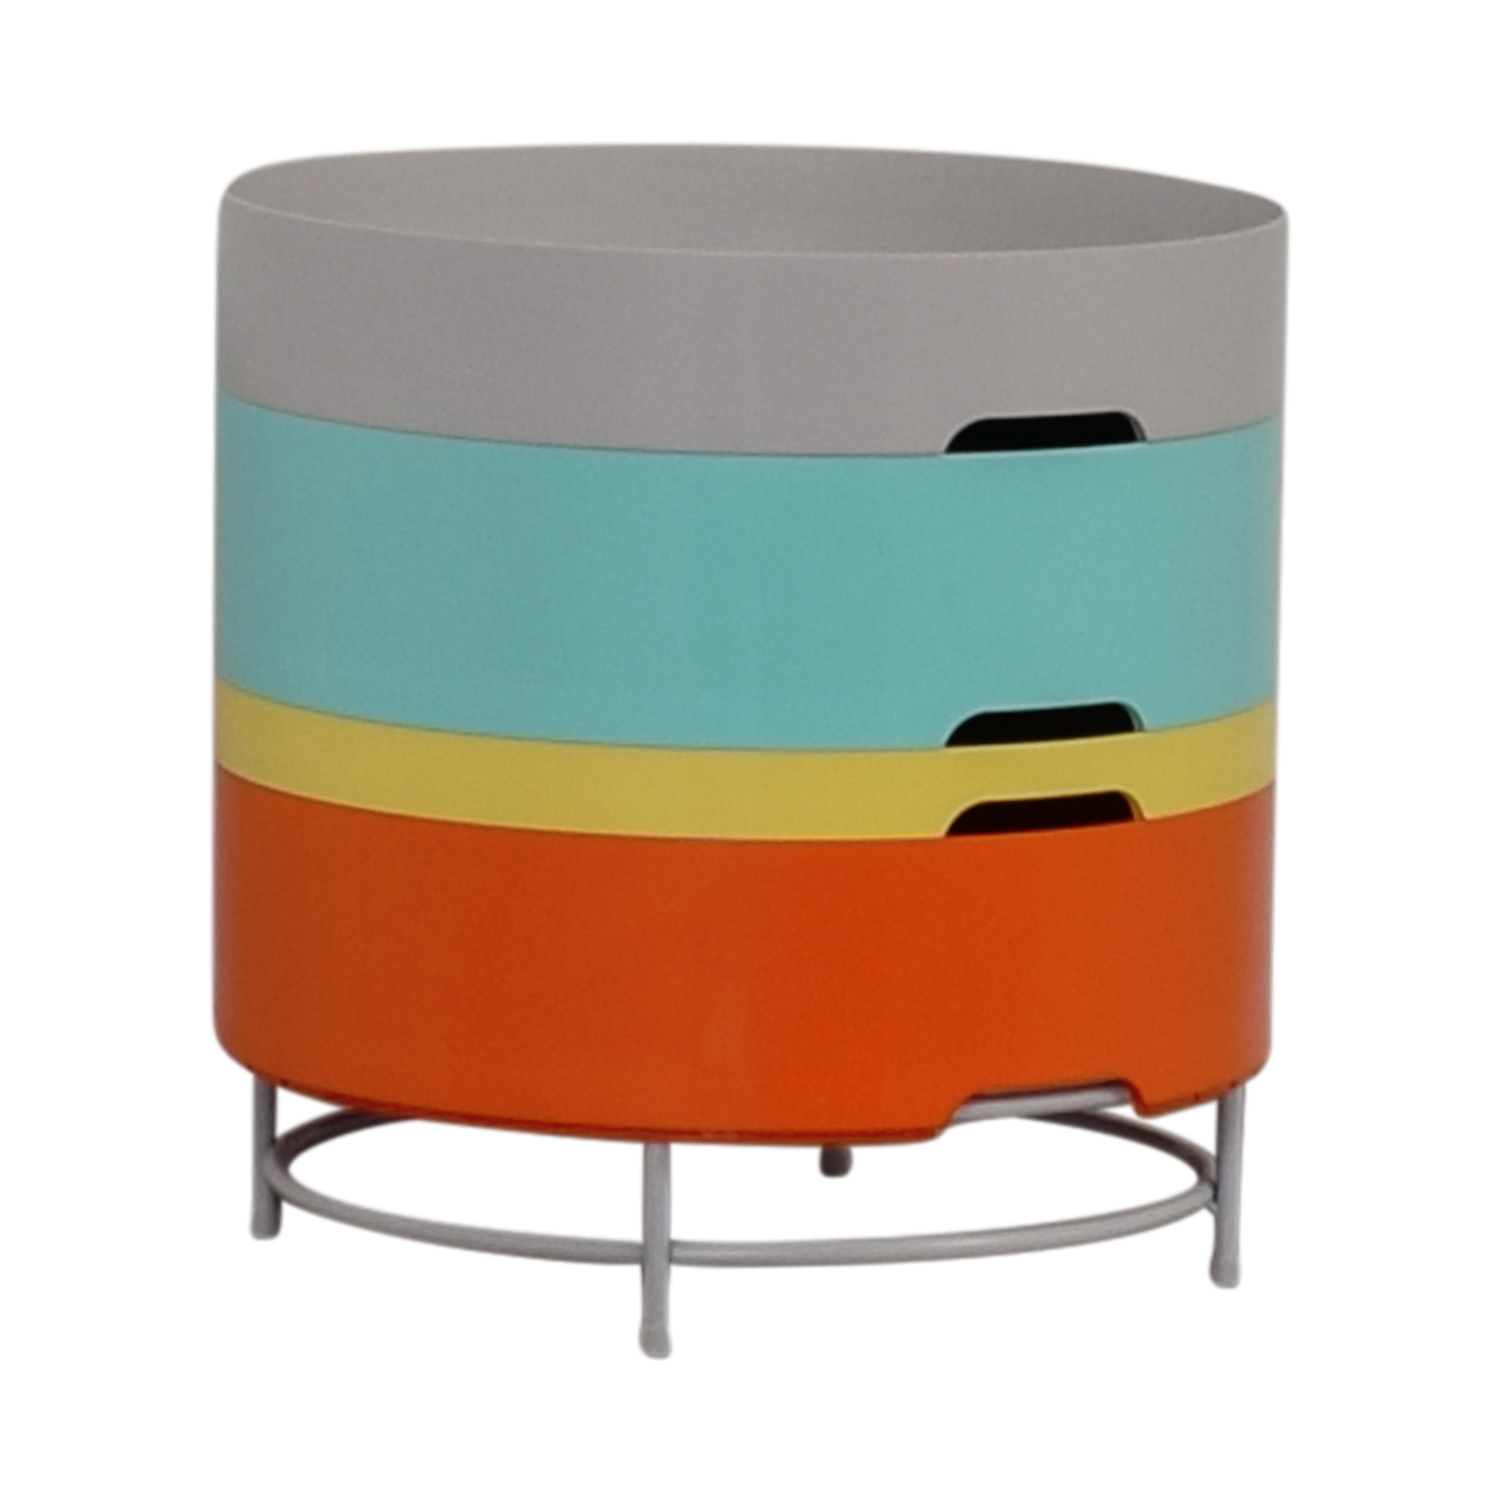 85 off ikea ikea ps 2014 multi colored round side. Black Bedroom Furniture Sets. Home Design Ideas